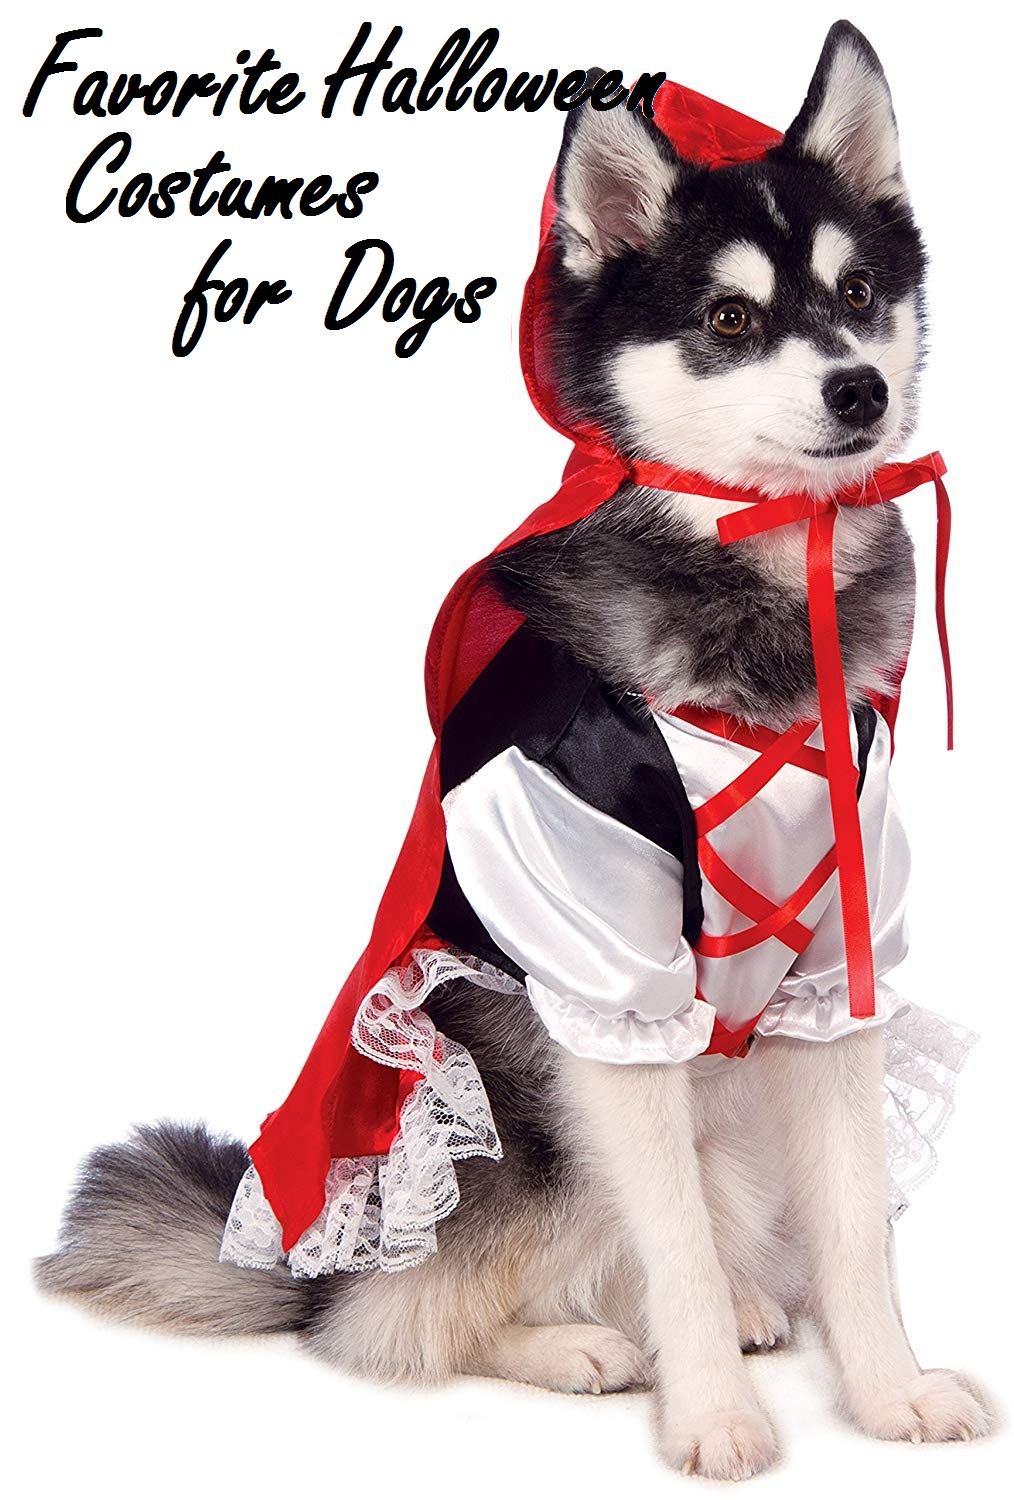 Favorite Halloween Costumes For Dogs